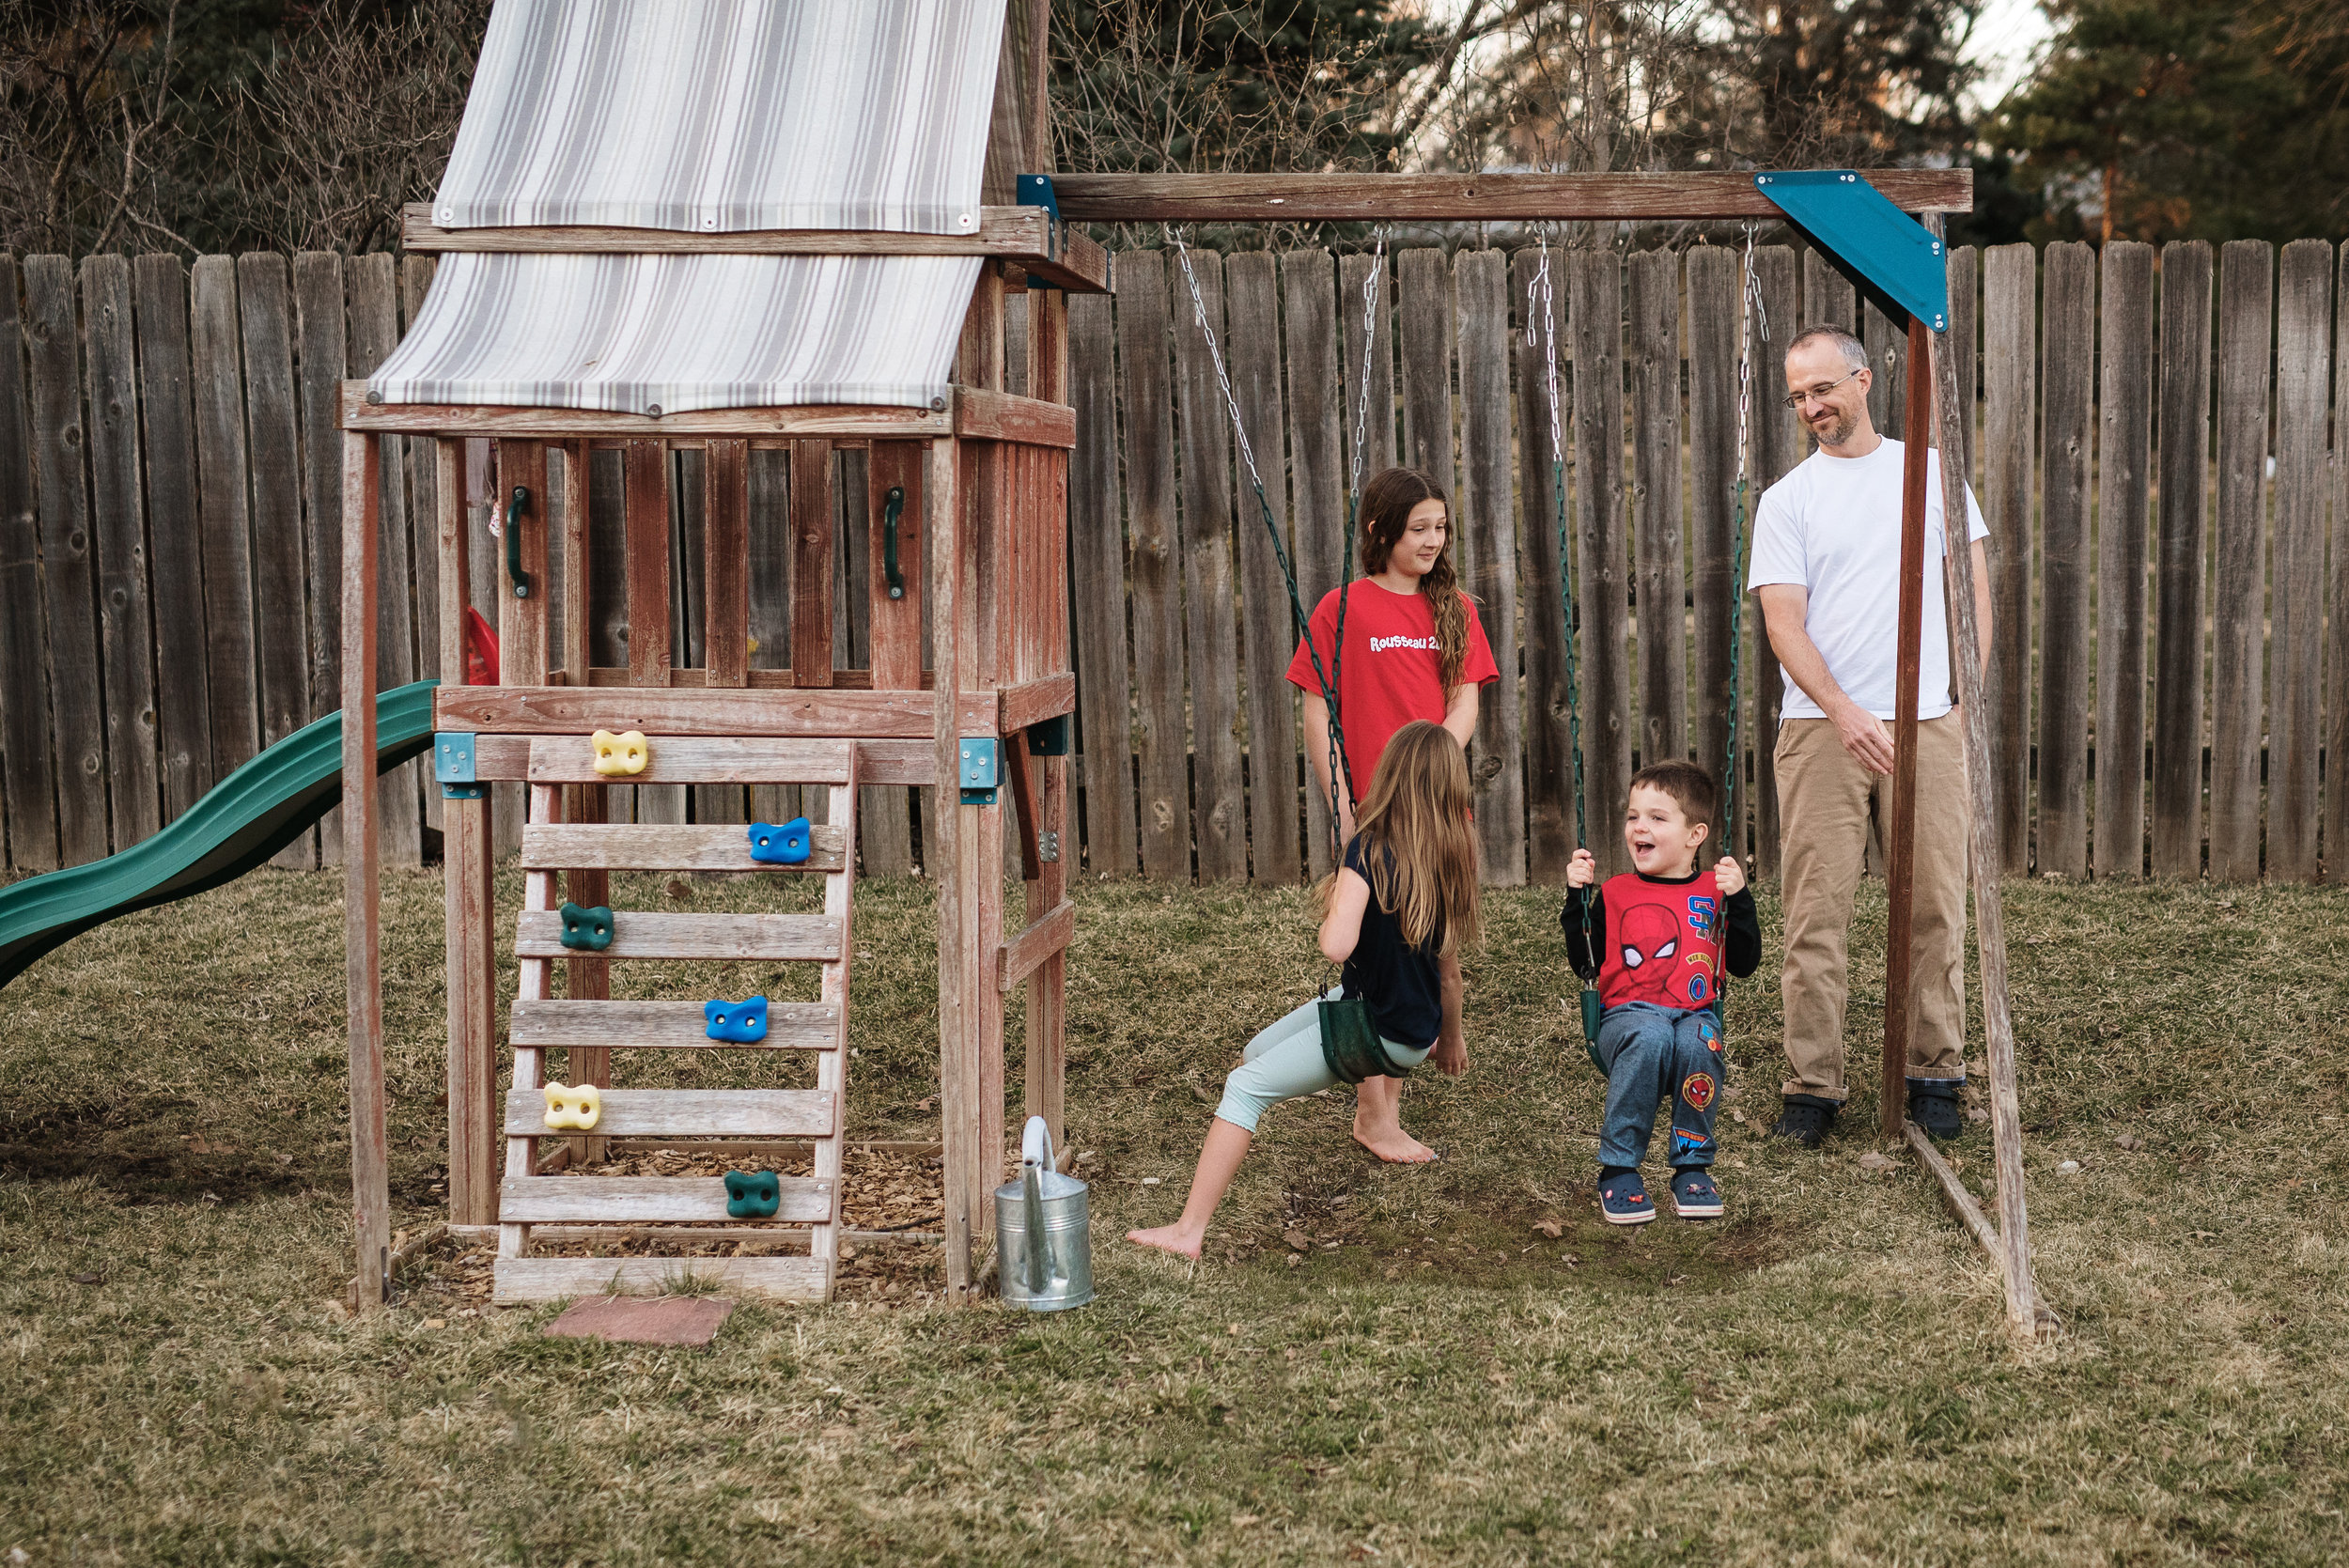 family playing in backyard on swingset in Lincoln Nerbaska.jpg